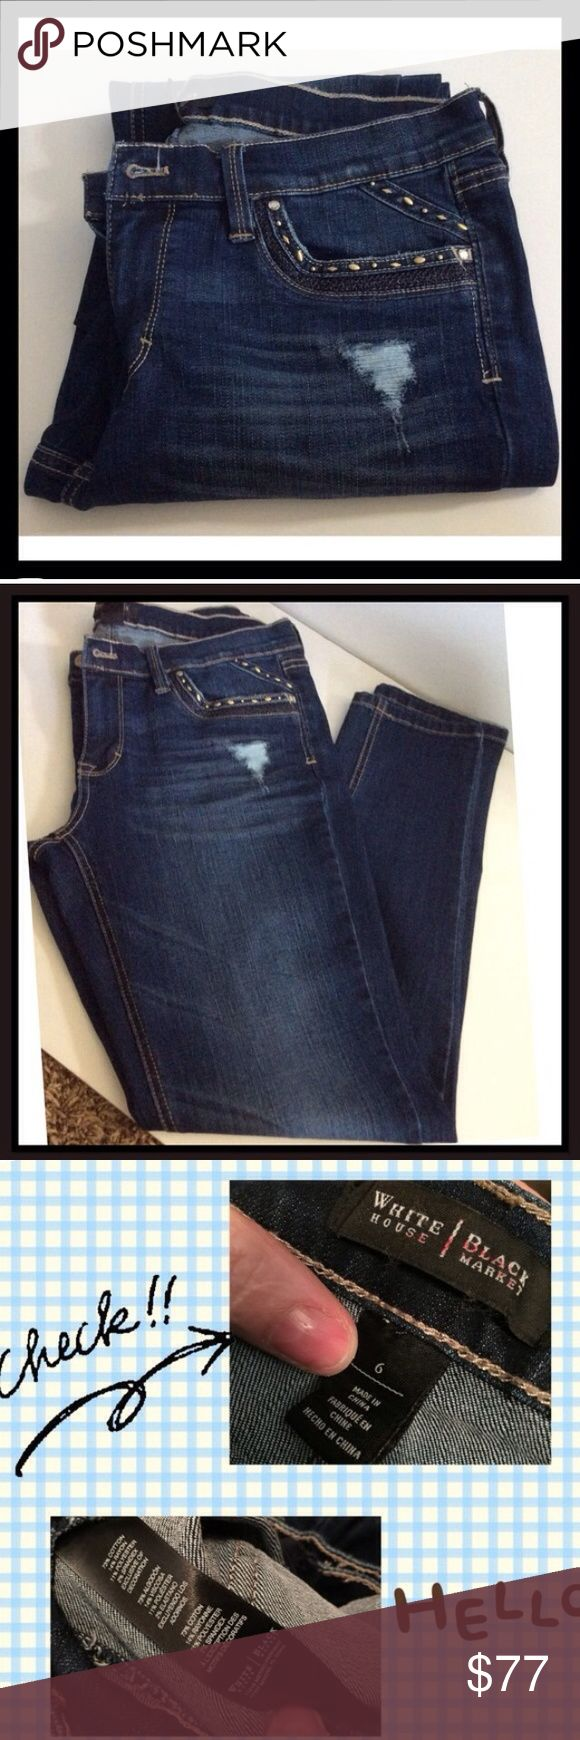 White House black market. Straight leg. Size 6 Women's adult size 6 Distressed denim jeans, with beading and a darker blue stitching on the back and front of the pocket. Inseam is 30 1/2, material is 73% cotton, 14% rayon, 11% polyester, 2% elastine... They do have a stretch to them. NWOT White House Black Market Jeans Straight Leg